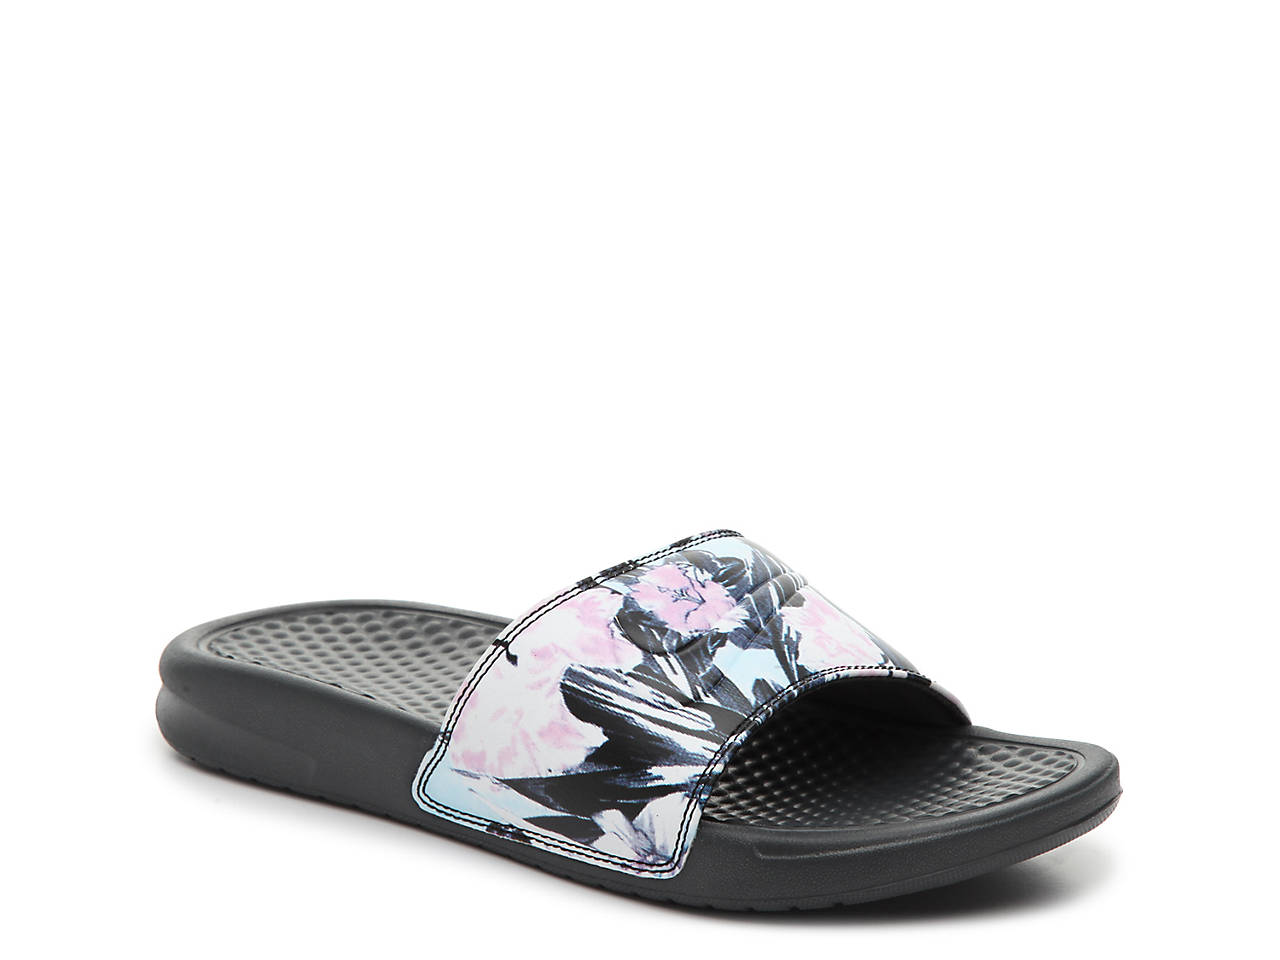 NIKE BENASSI JUST DO IT PRINT FLOWER